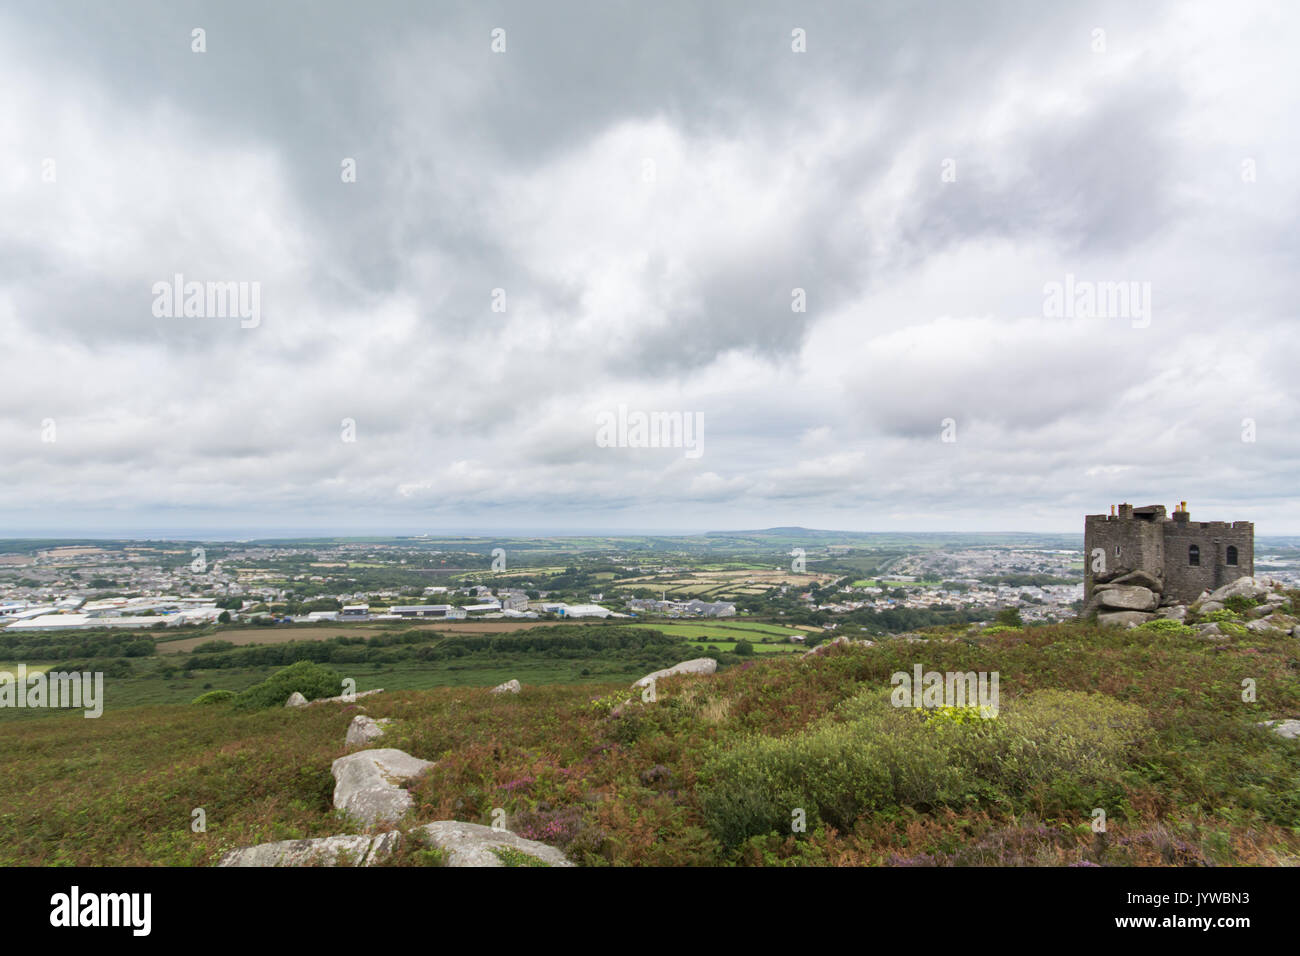 The view from the top of Carn Brea in Redruth, looking out over Cornwalls mining areas. - Stock Image